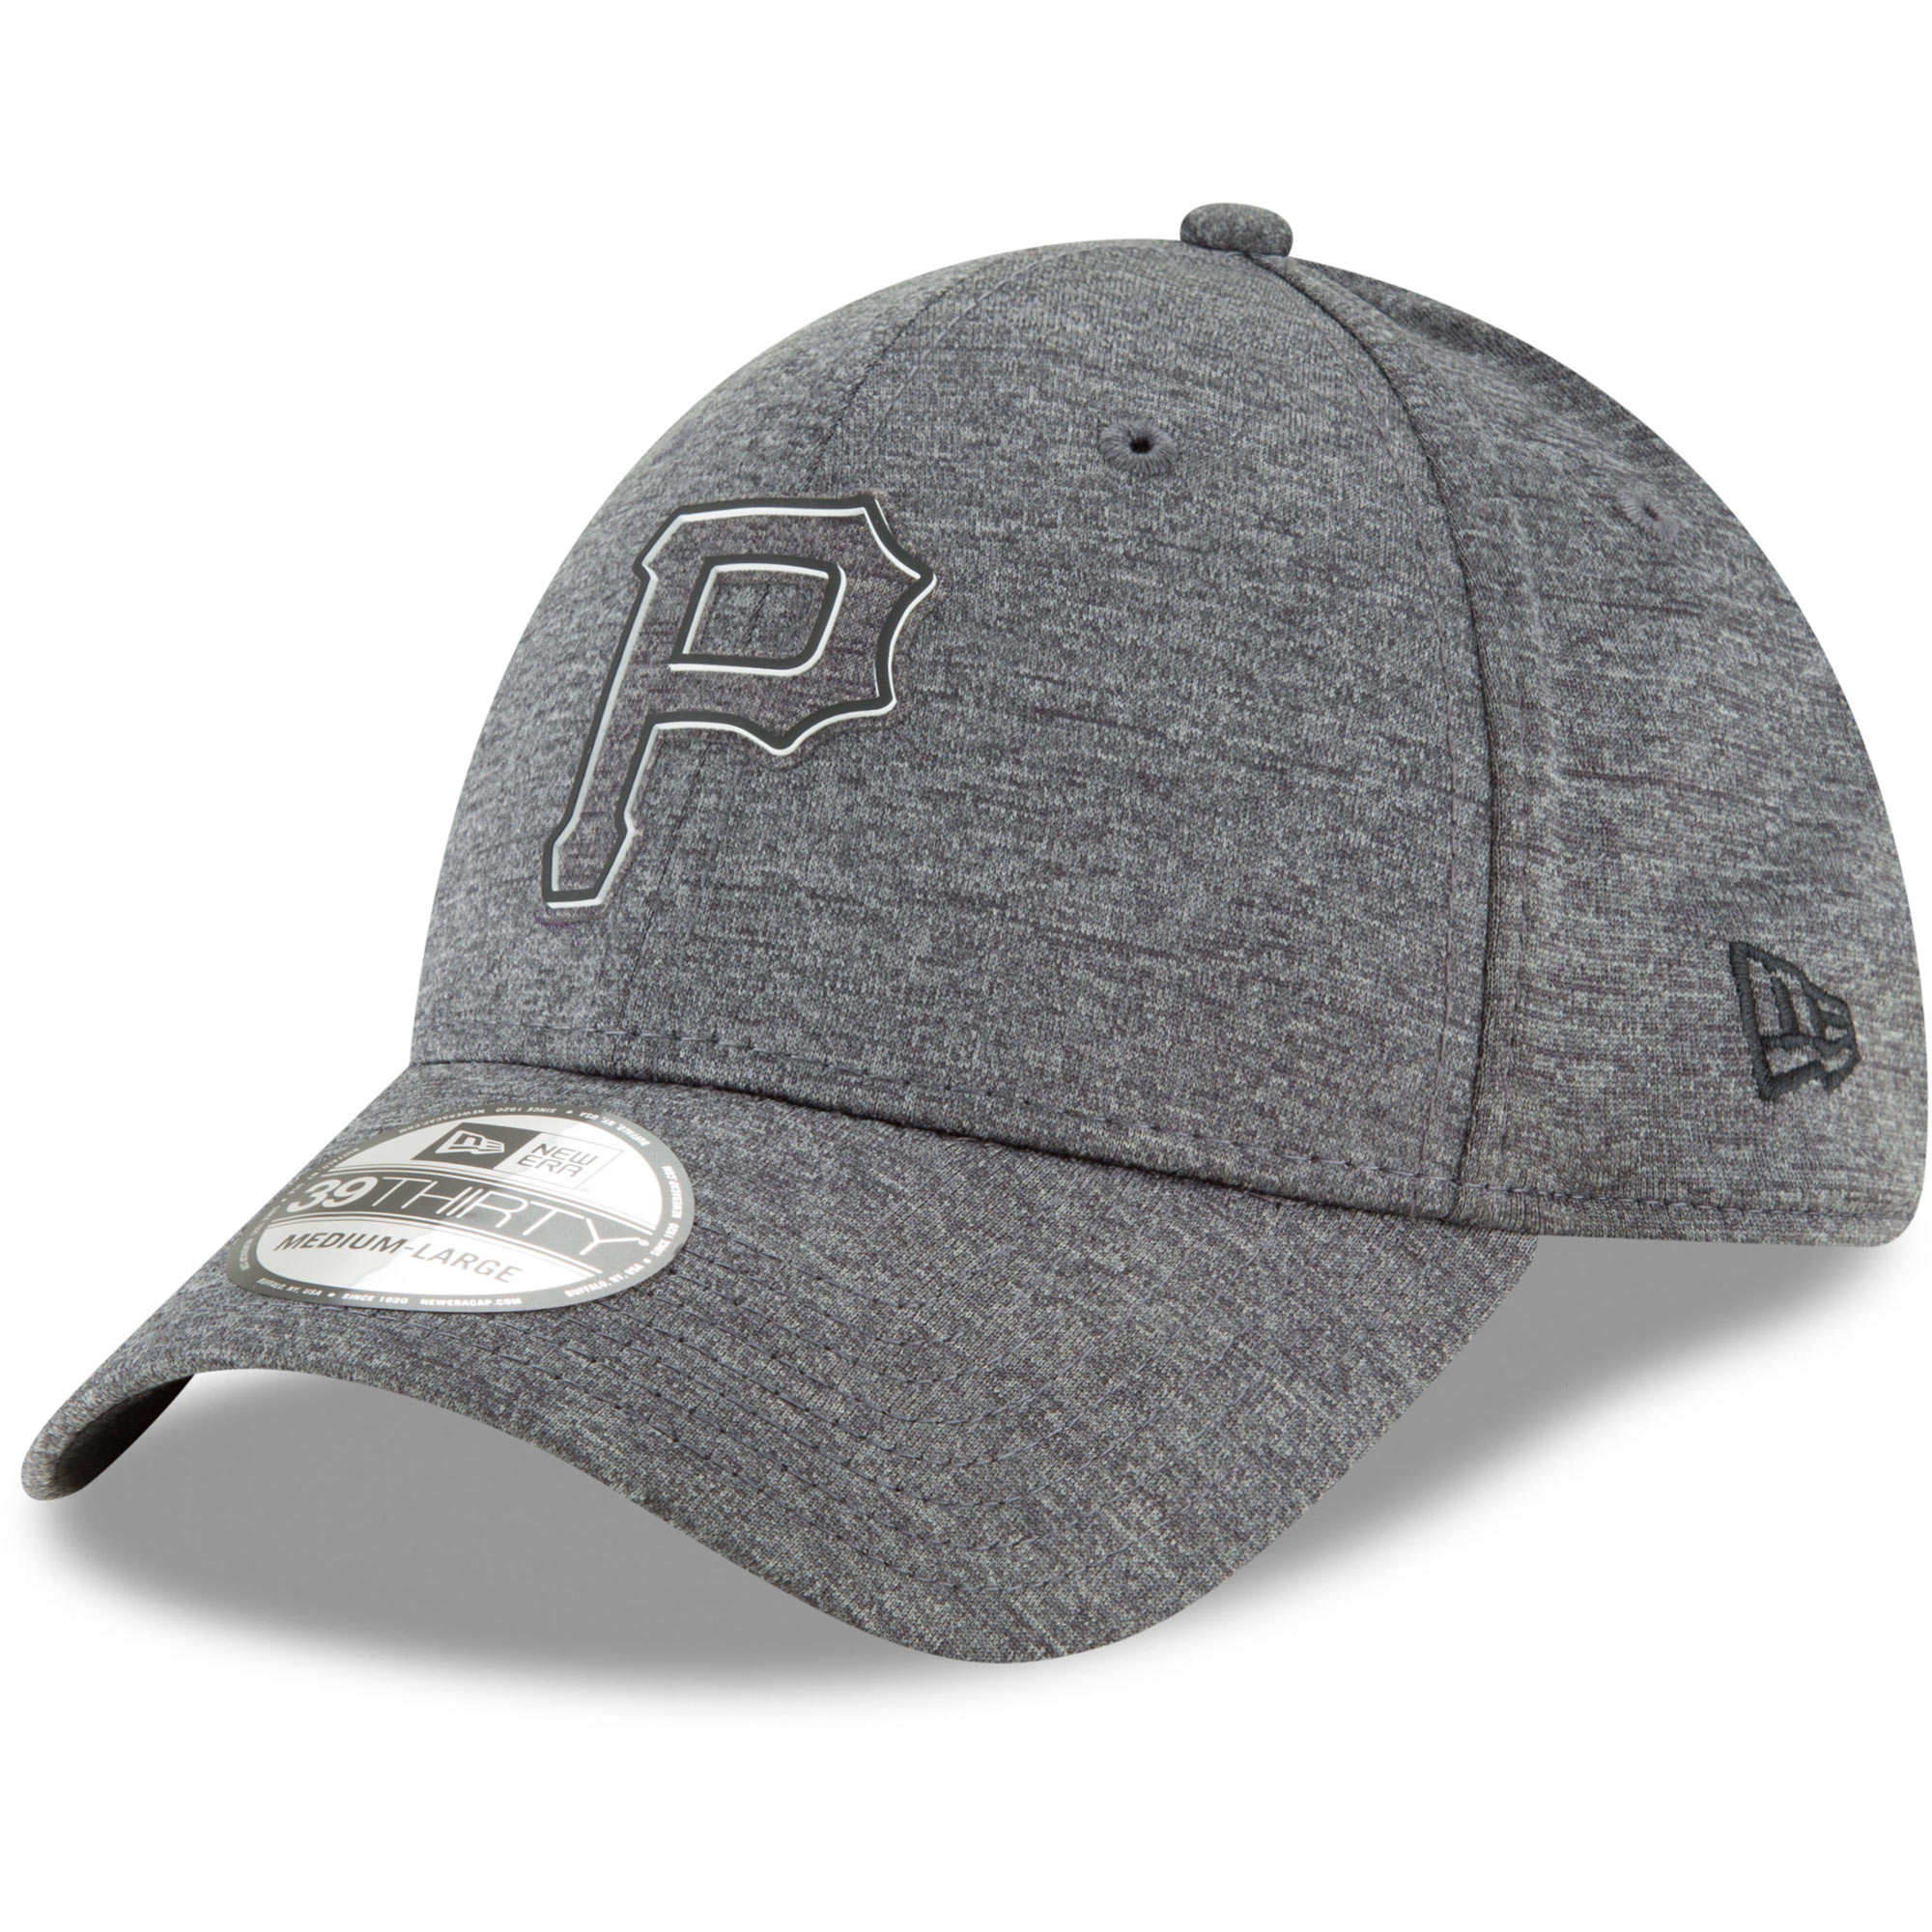 Pittsburgh Pirates New Era 2018 Clubhouse Collection Classic 39THIRTY Flex Hat - Graphite